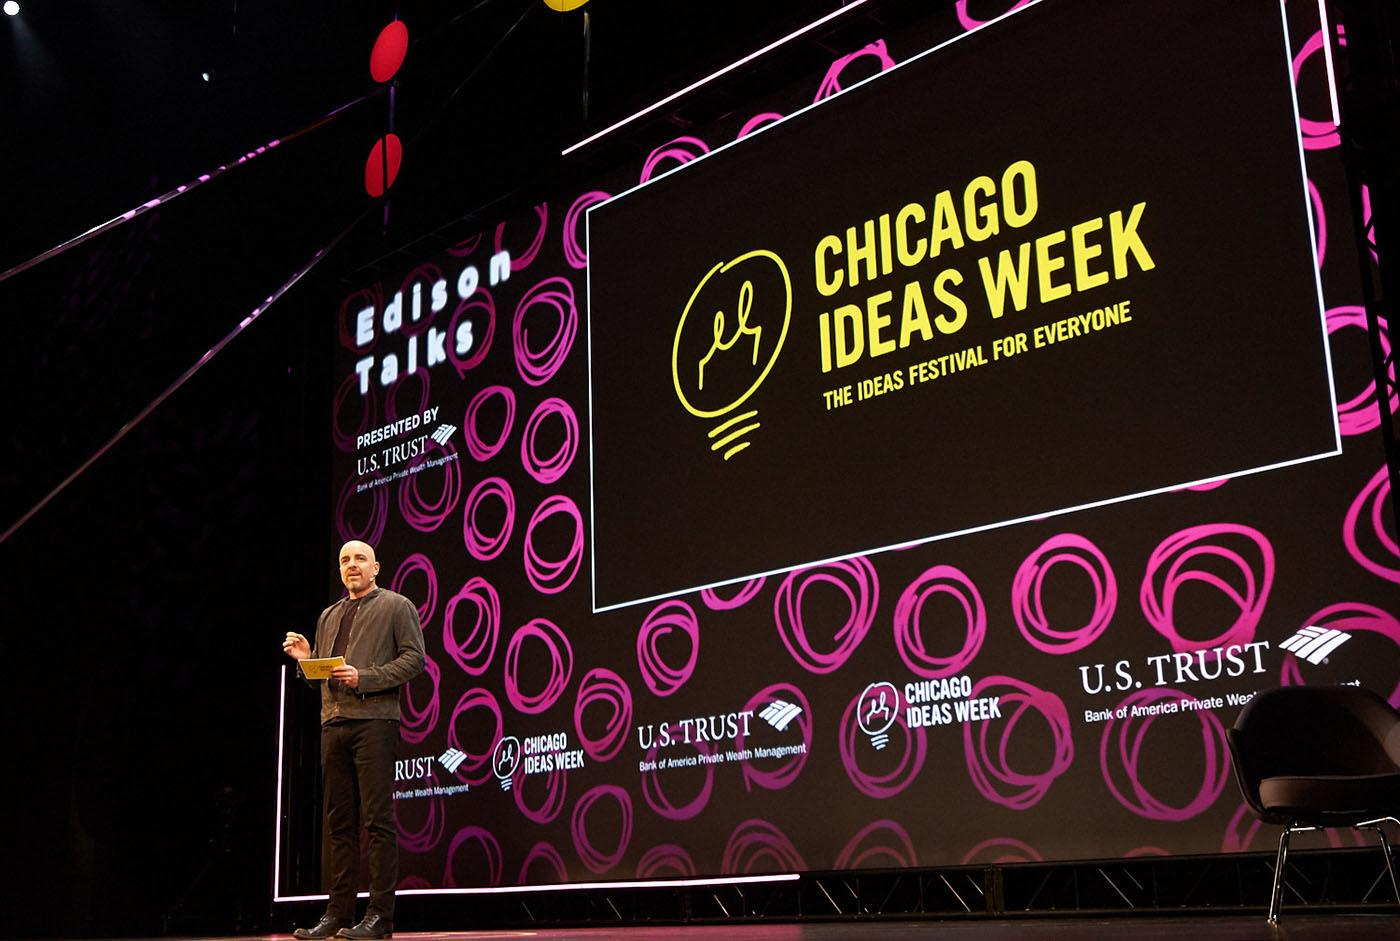 Chicago Ideas Week.